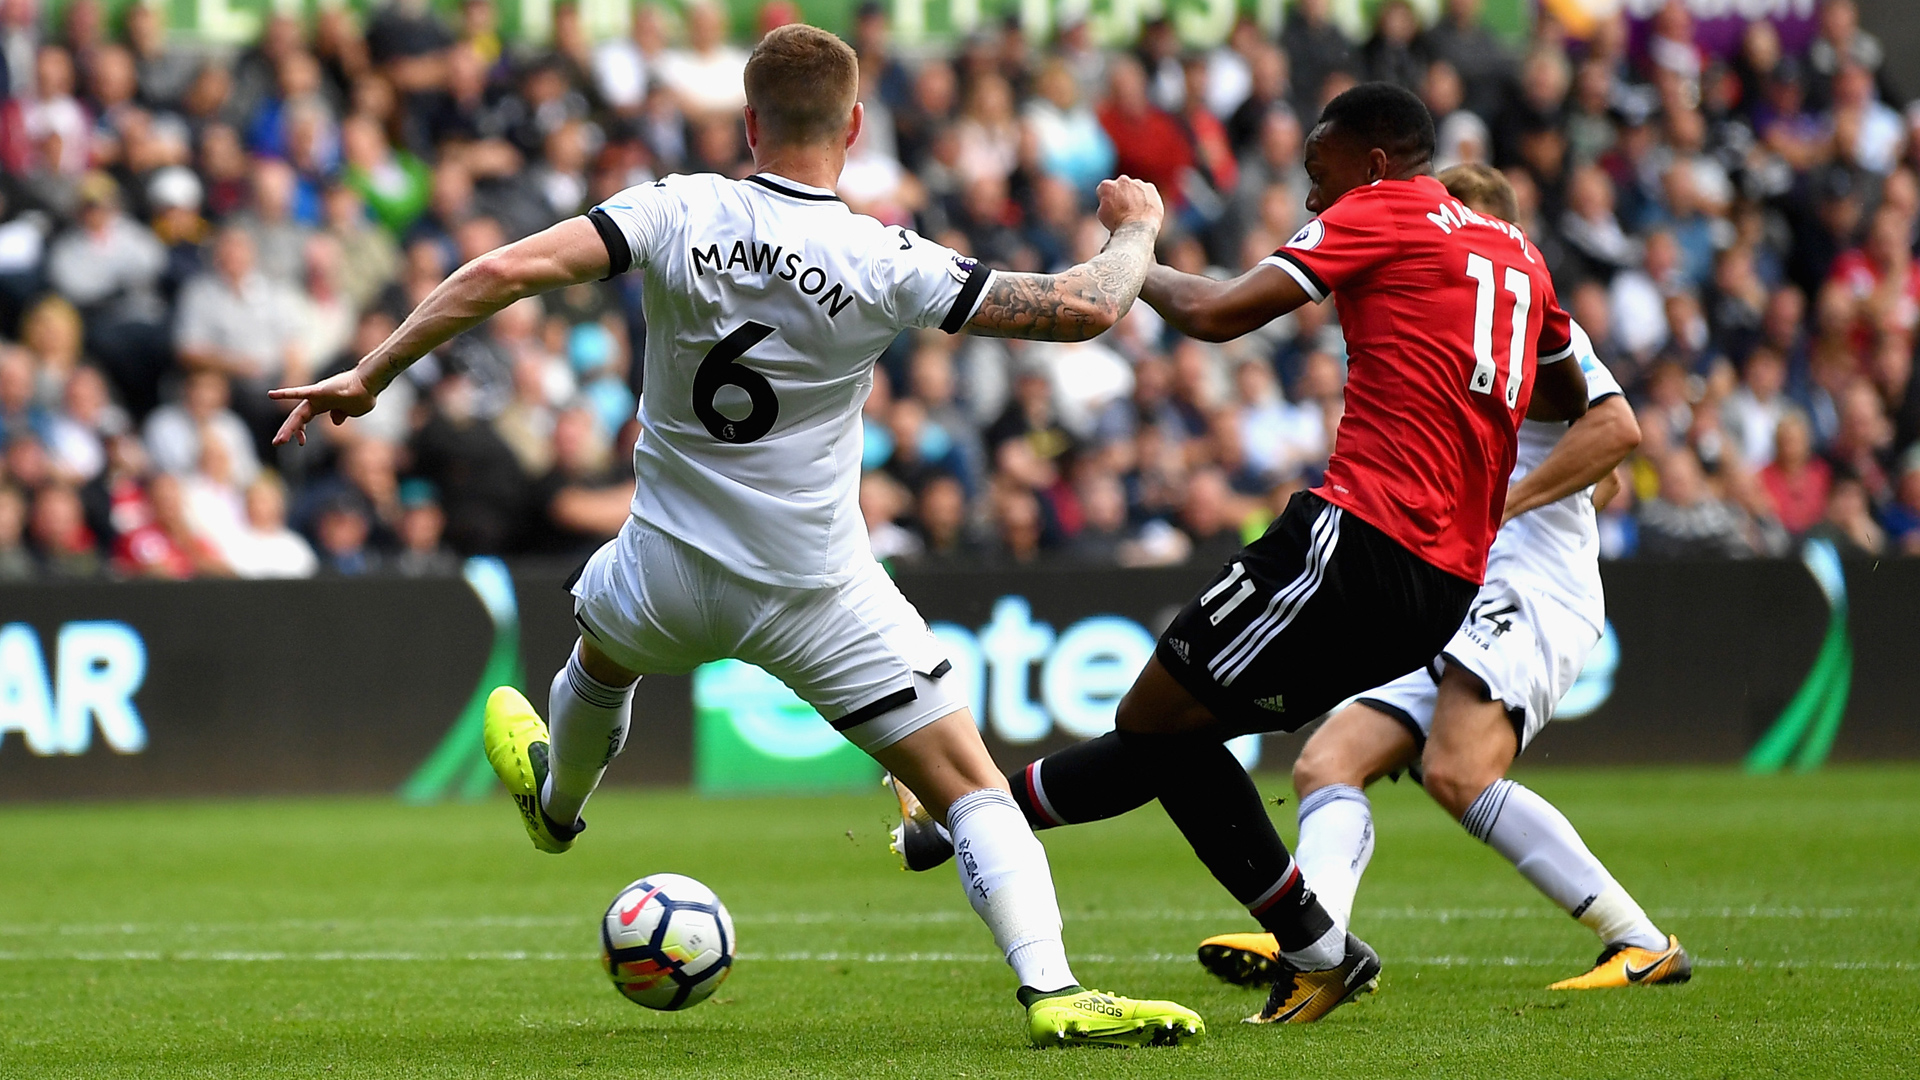 Swansea City Manchester United Mawson Martial 23102017